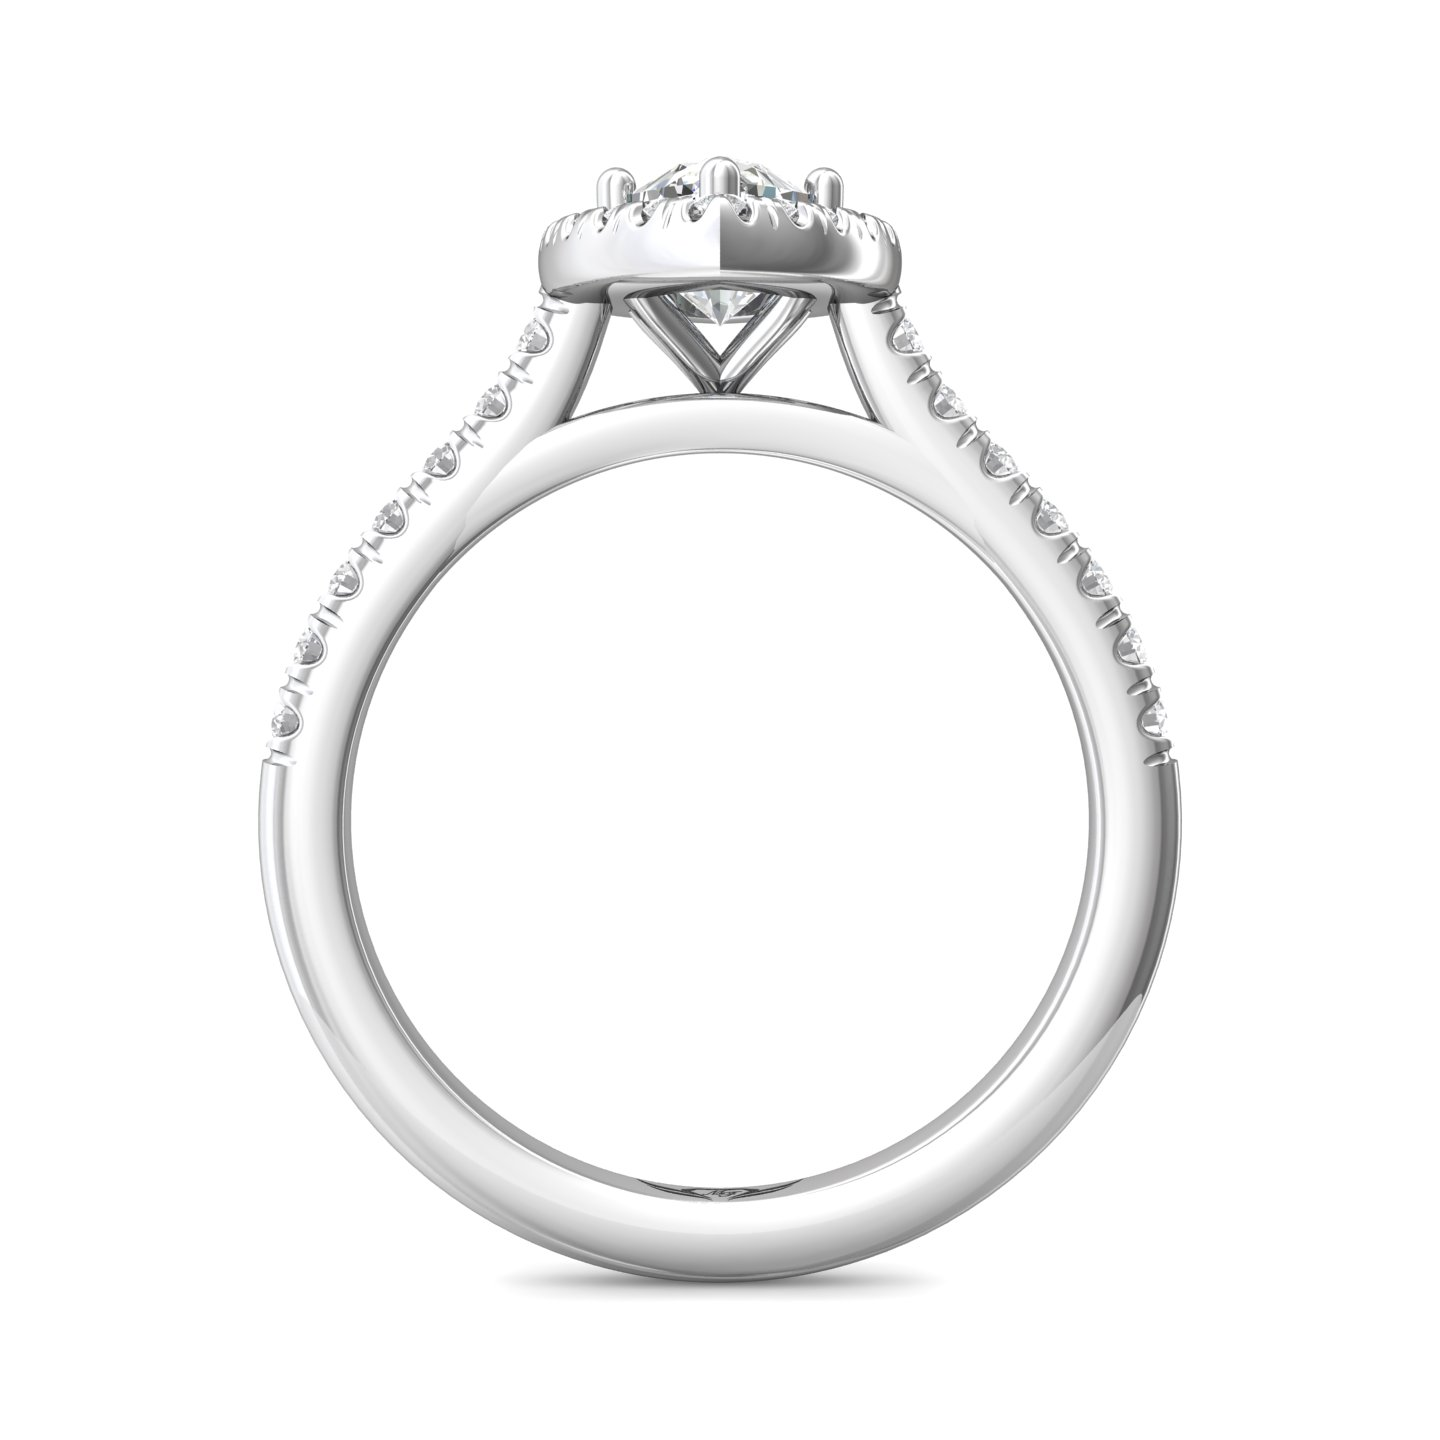 Rings - 14K White Gold FlyerFit Micropave Halo Engagement Ring - image #2